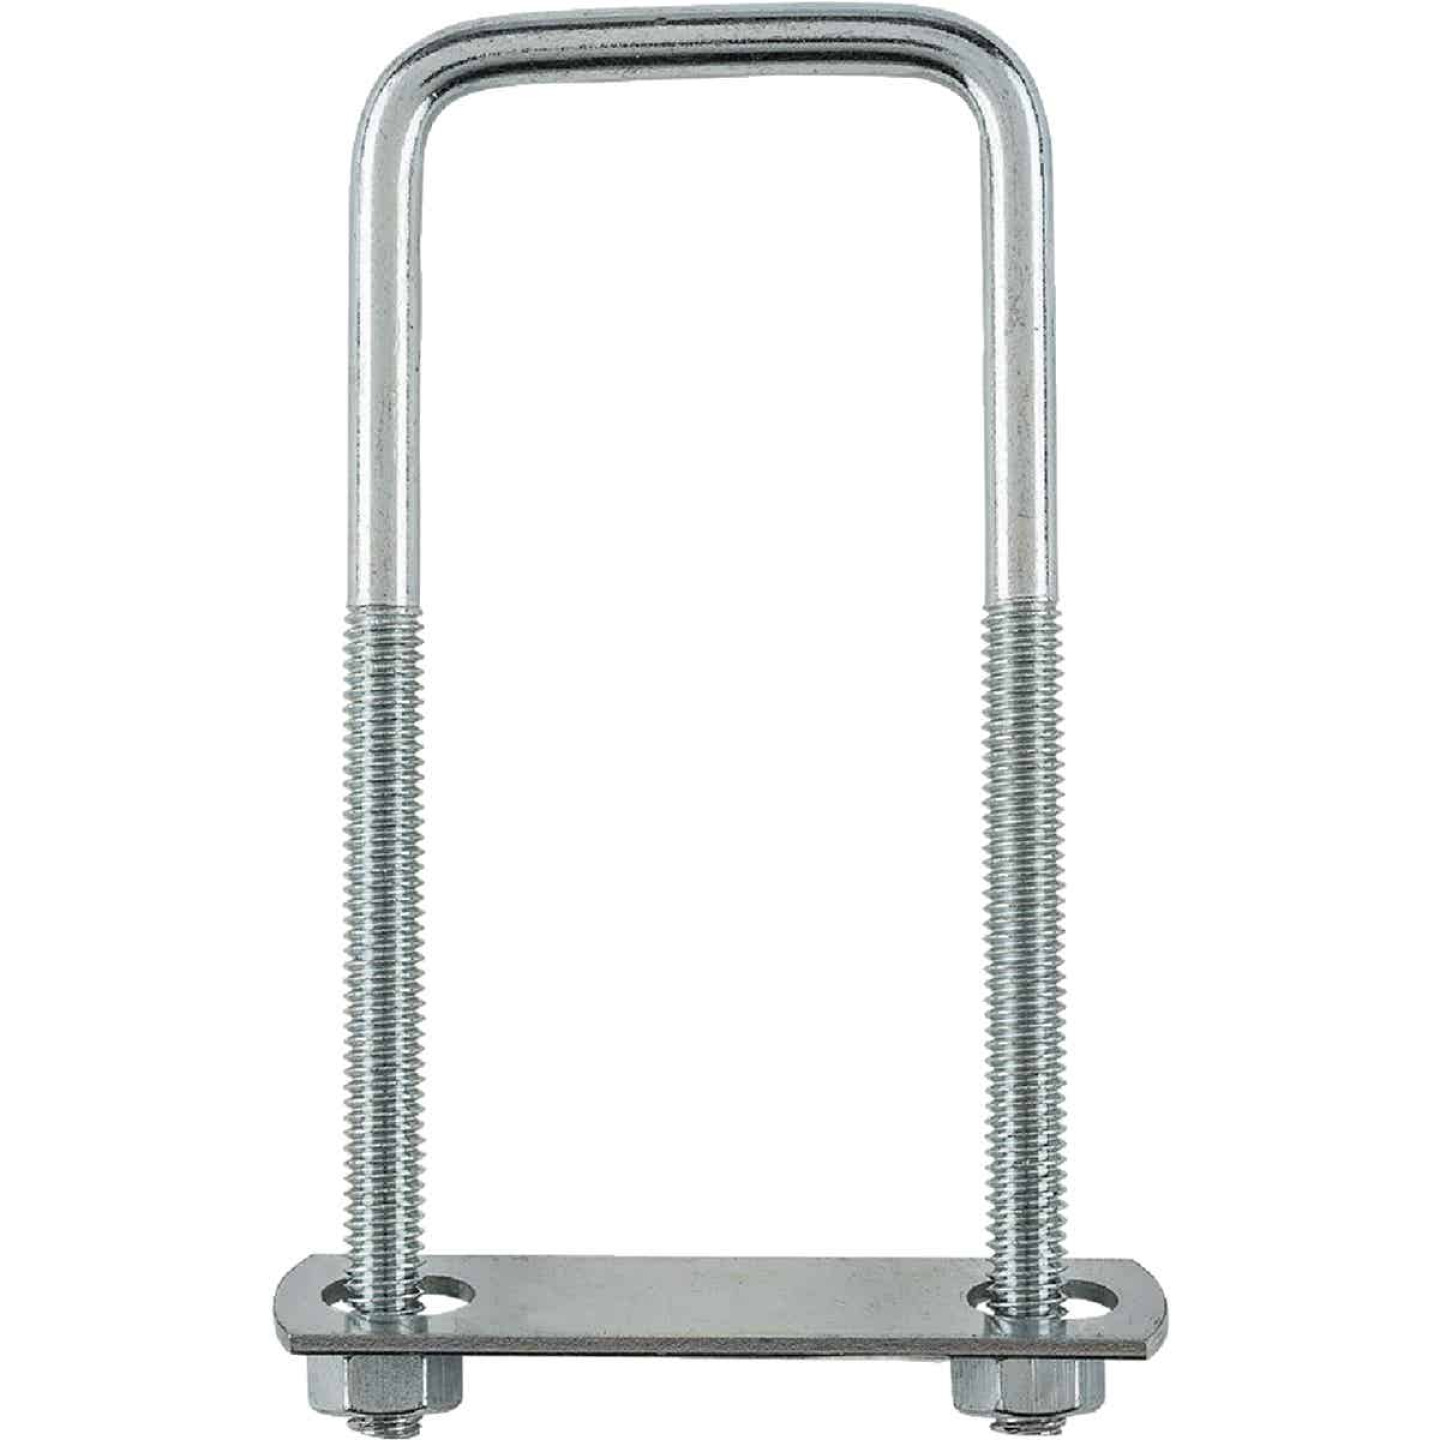 National 5/16 In. x 2 In. x 5 In. Zinc Square U Bolt Image 2